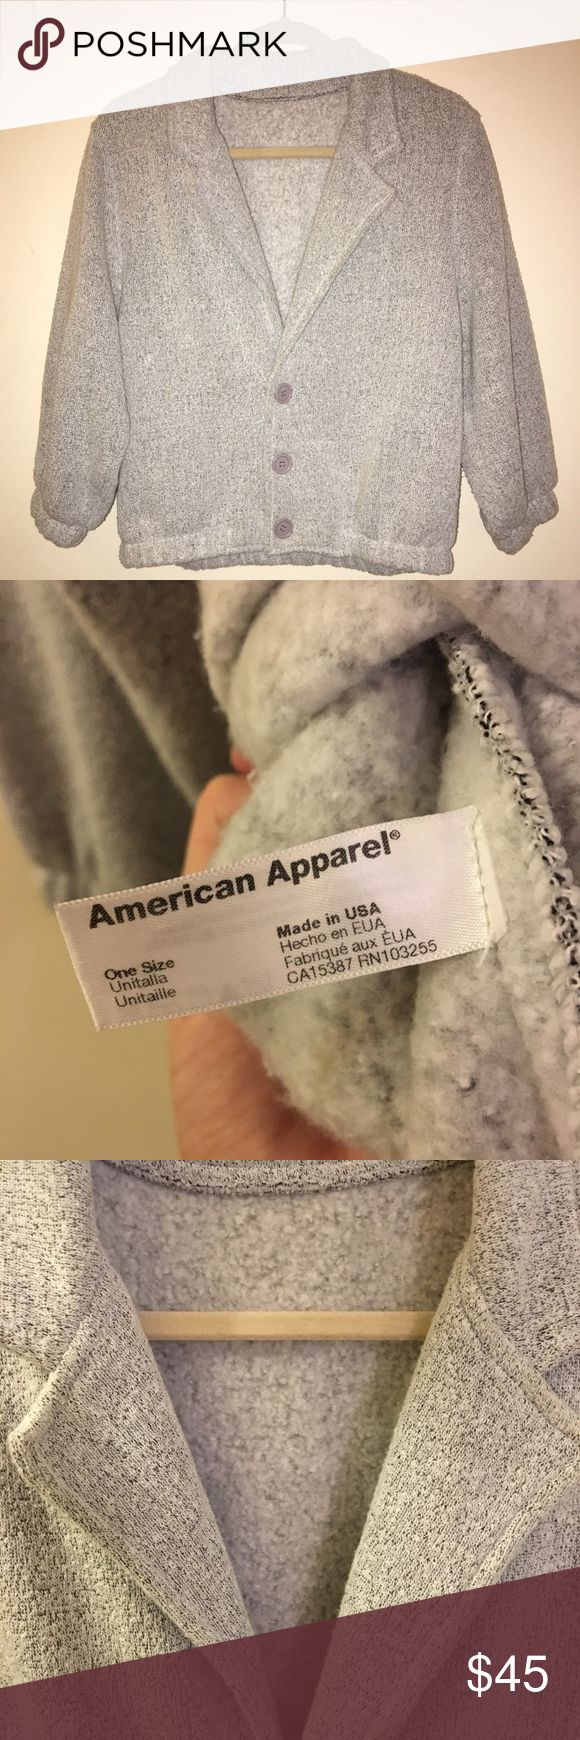 American Apparel fleece-lined jacket (gray) American Apparel fleece-lined jacket with cropped elastic sleeves. SPECS: gray; one-size. This jacket has been worn only a few times and is in mint condition. No longer sold in stores/online. Happy to provide measurements upon request. American Apparel Jackets & Coats